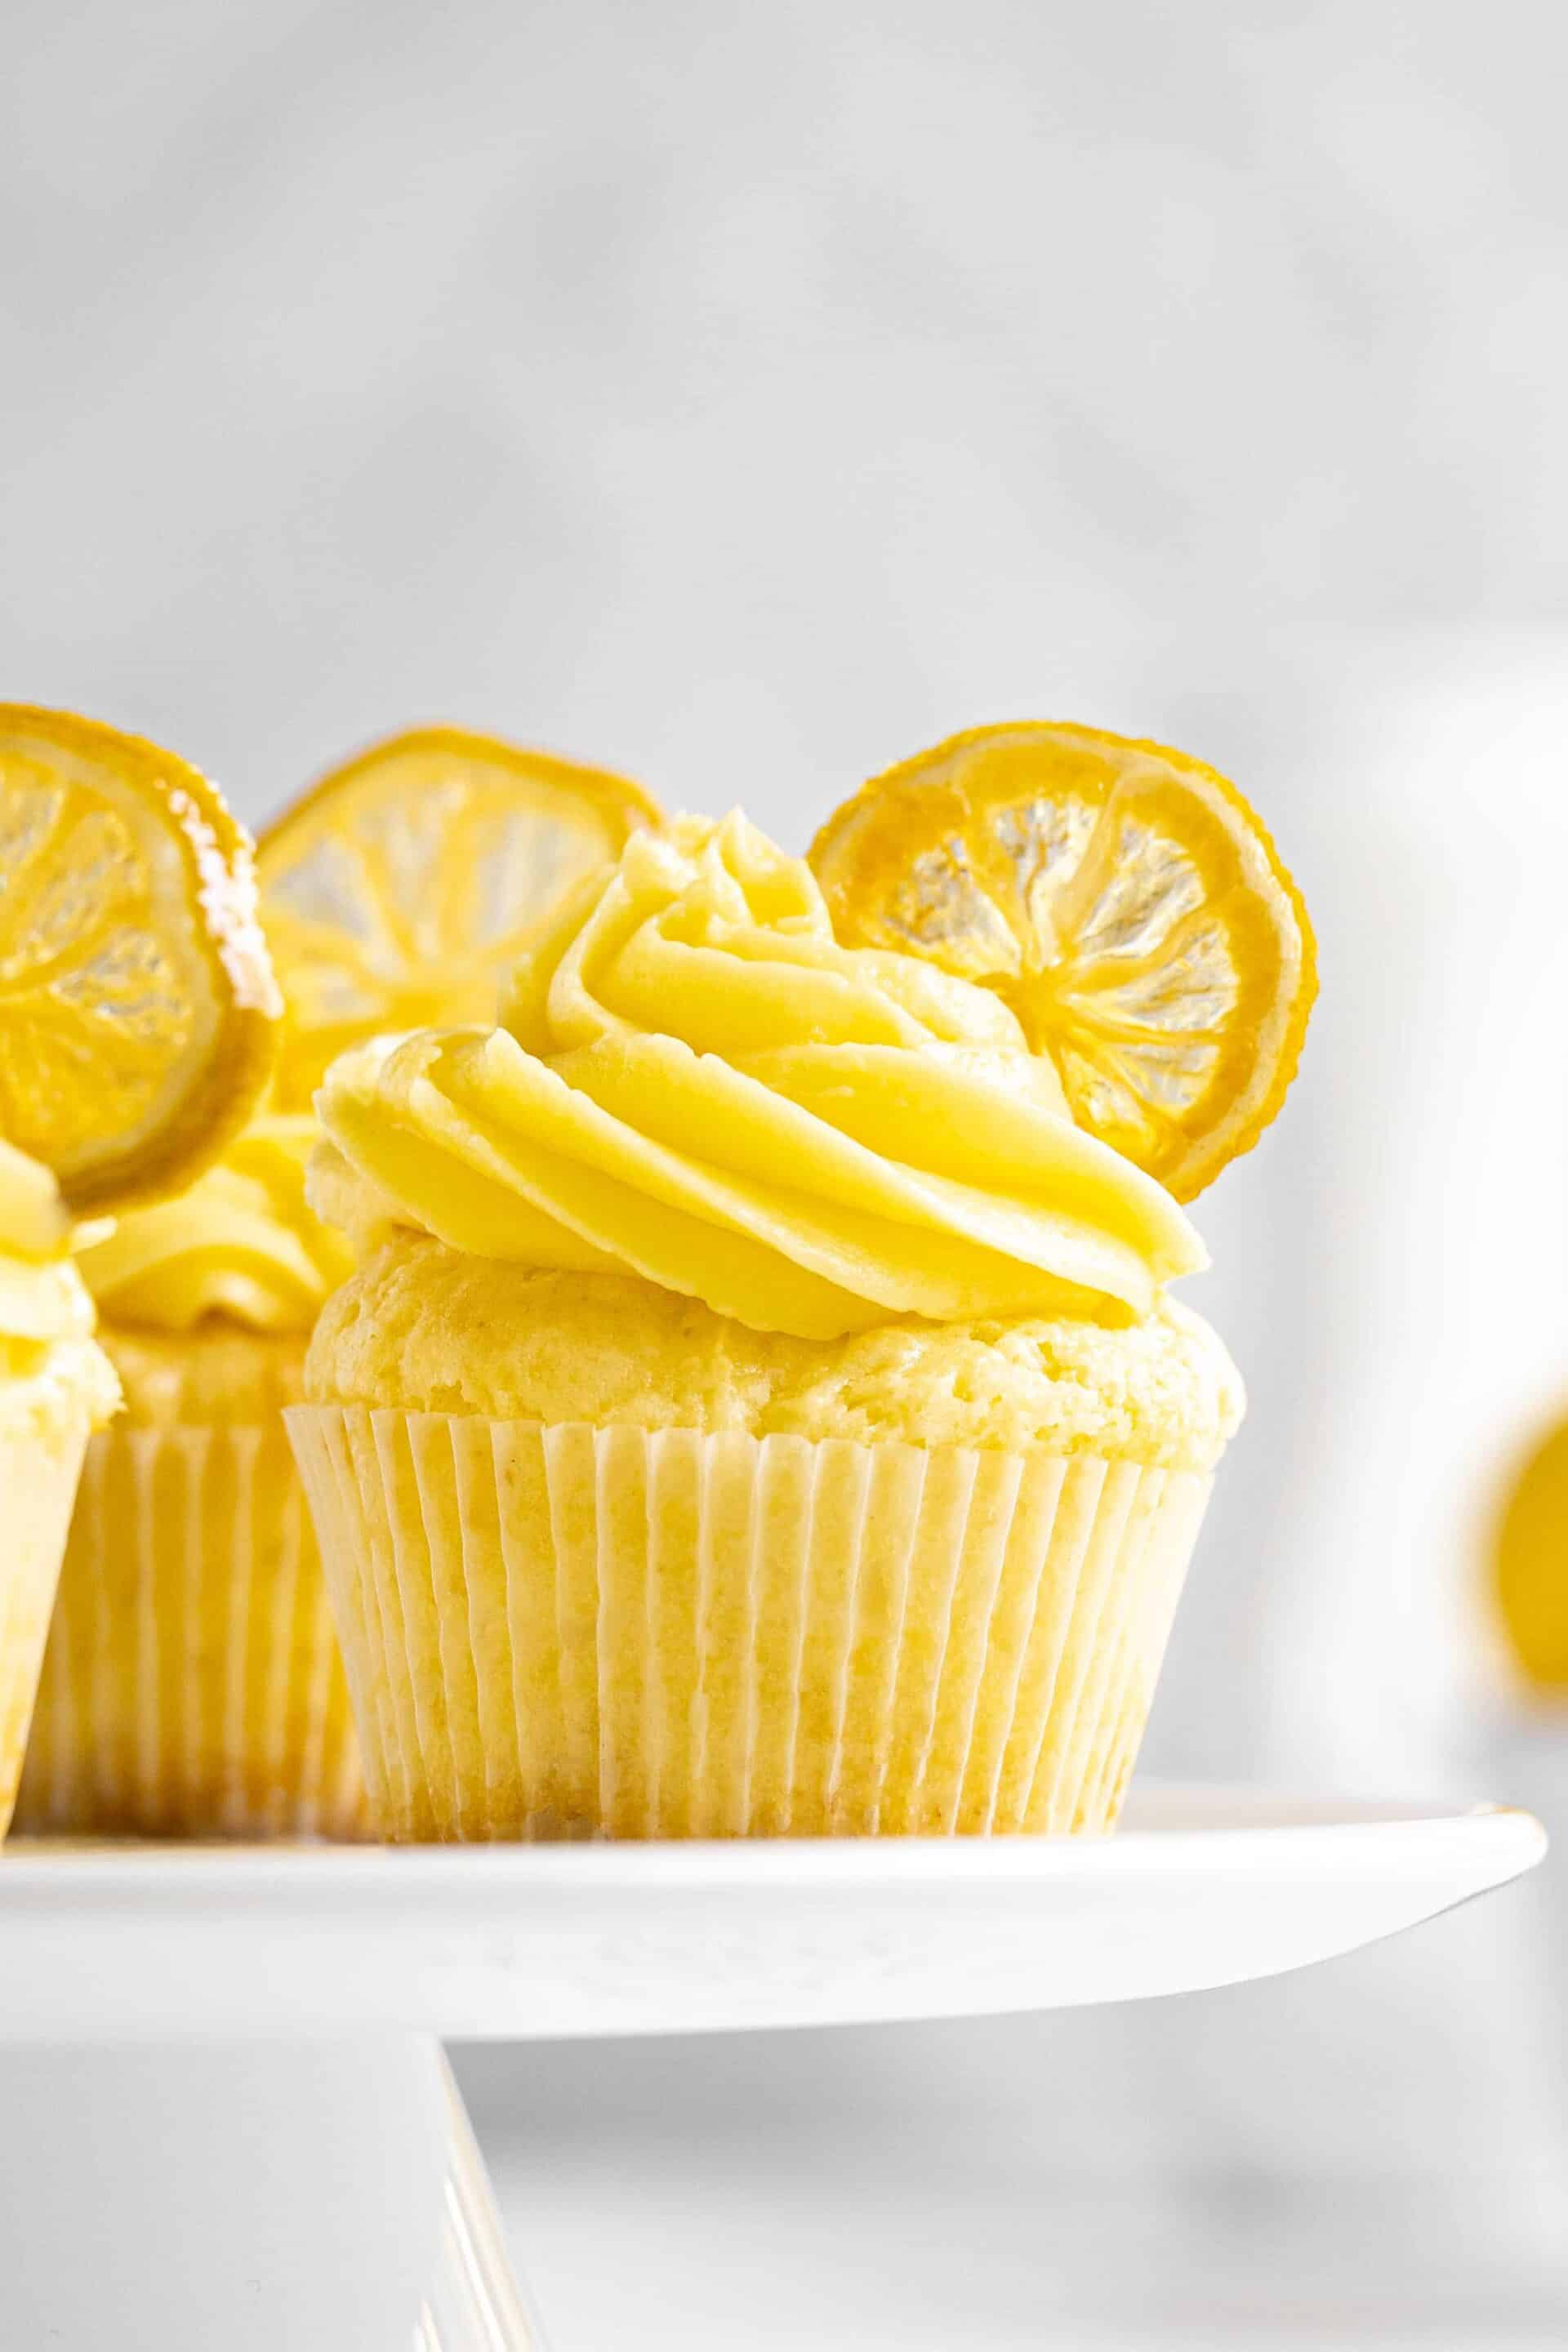 A white table with lemon cupcakes with candied lemon slices